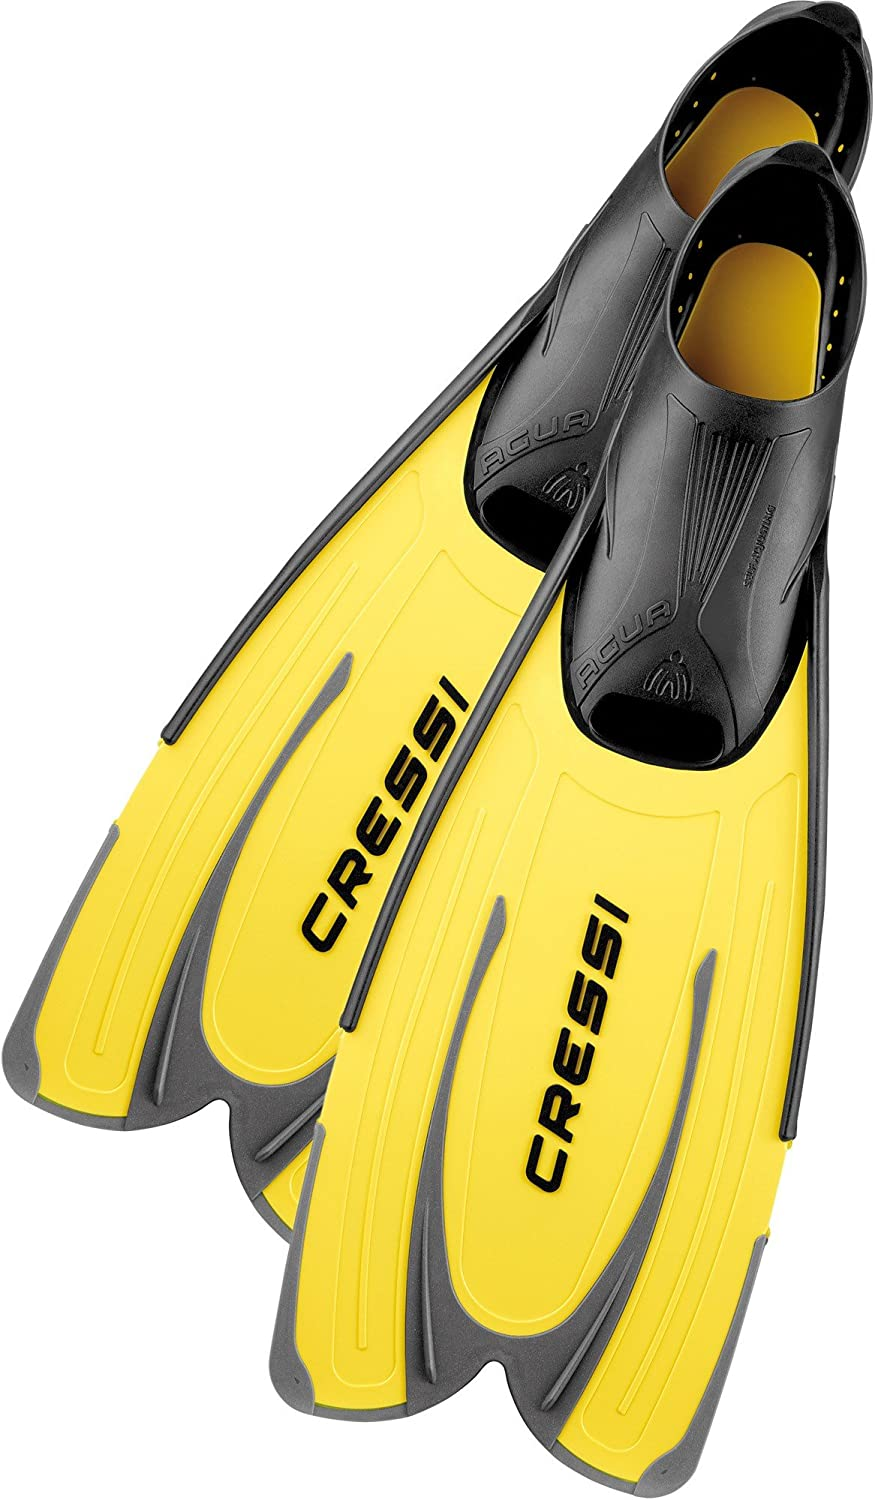 CRESSI (Cressy) scuba snorkel swim fin Agua [AGUA] long blade Furufutto [Japan imports regular agency goods] yellow 35 36 (2.5   3.5) CA201035